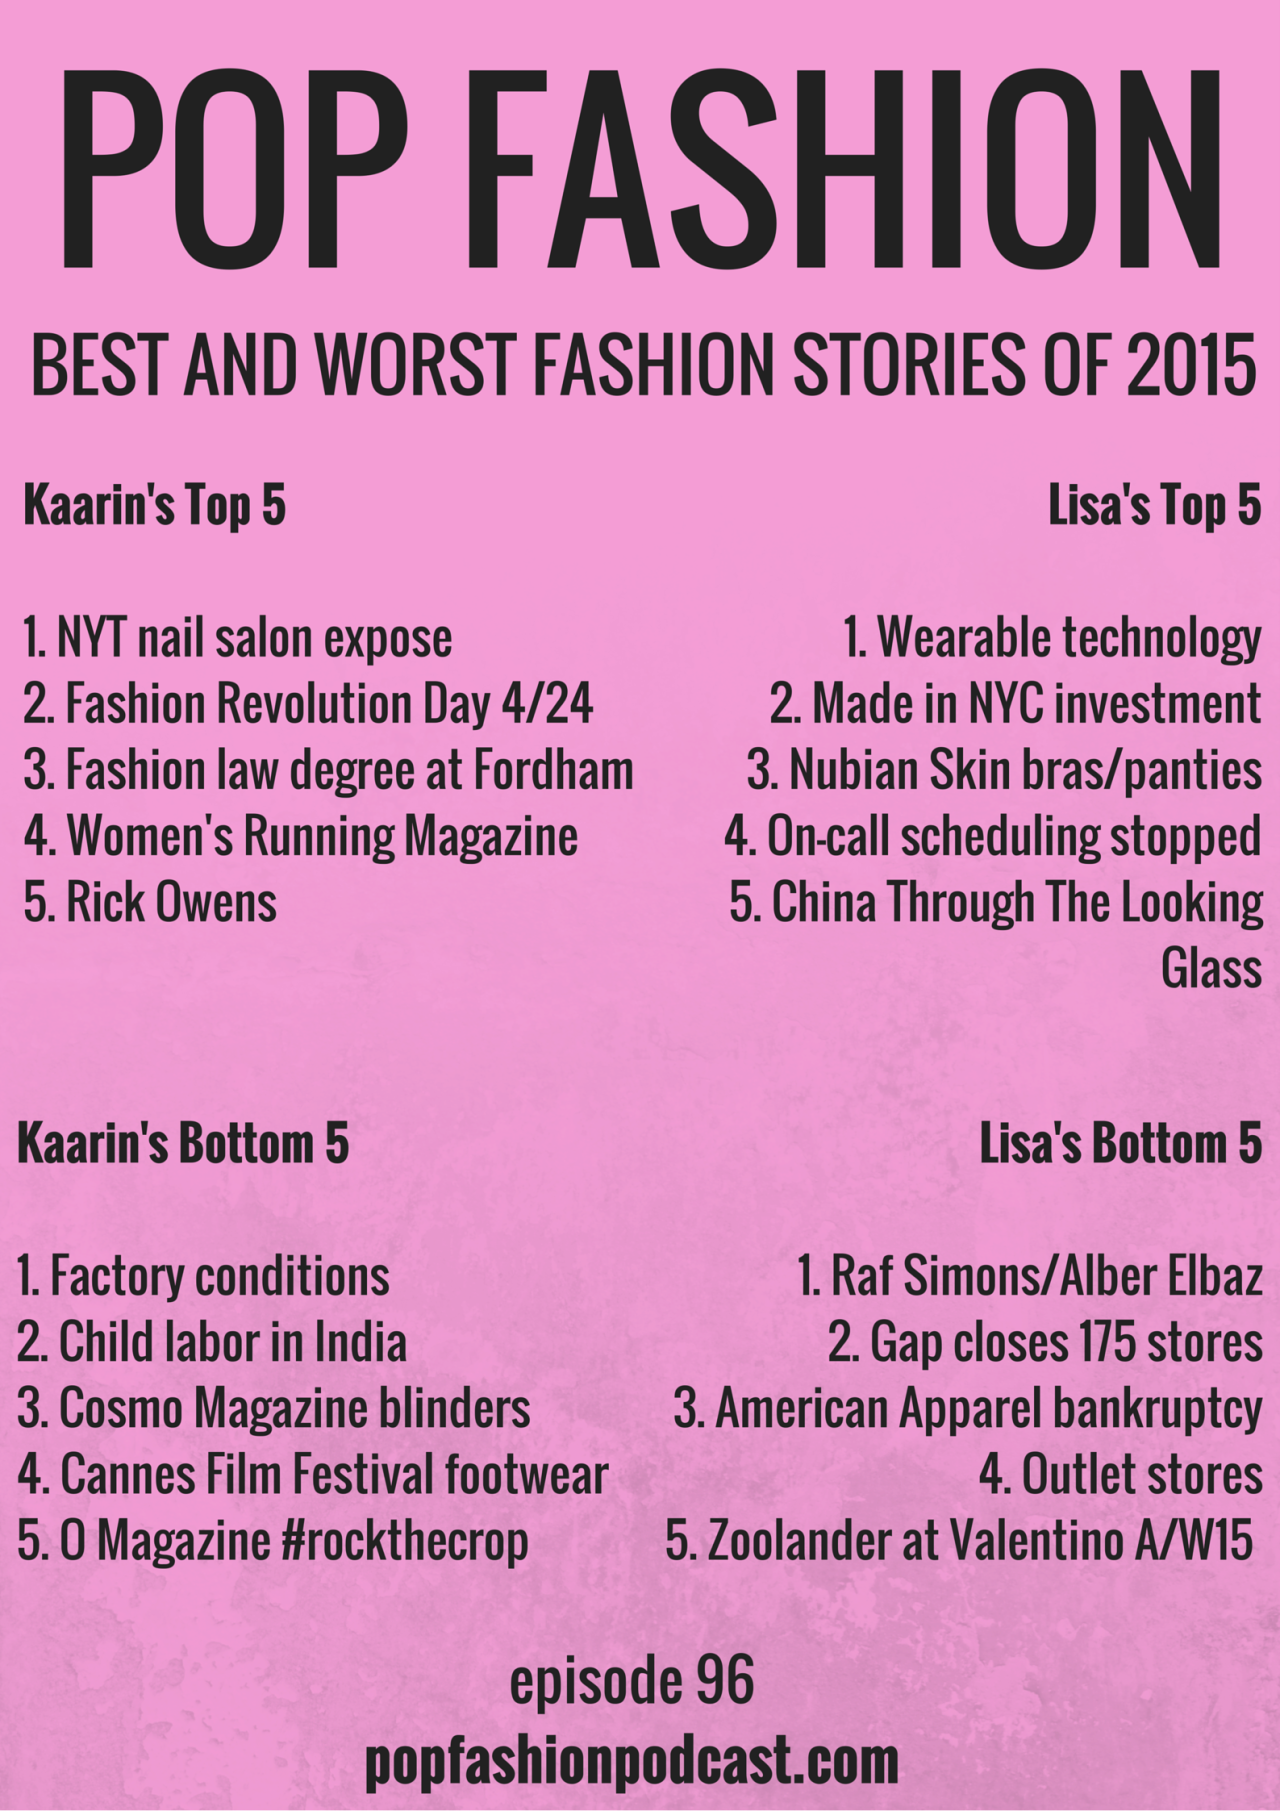 Our year-end episode is here!  Episode 96 is all about 2015′s best and worst fashion news of the year.        Kaarin's Top 5     1.  NYT nail salon expose  2.  Fashion Revolution Day 4/24  3.  Fashion law degree at Fordham  4.  Women's Running Magazine   5.  Rick   Owens    Kaarin's Bottom 5   1.  Factory   conditions  continue  2.  Child labor in India  3.  Cosmo Magazine blinders  4.  Cannes Film Festival footwear  5.  O Magazine #rockthecrop    Lisa's Top 5   1.  Wearable technology  2.  Made in NYC investment  3.  Nubian Skin bras/panties  4.  On-call scheduling stopped  5.  China Through The Looking Glass      Lisa's Bottom 5   1.  Raf Simons / Alber Elbaz  2.  Gap closes 175 stores  3.  American Apparel bankruptcy  4.  Outlet stores  5.  Zoolander at Valentino A/W15